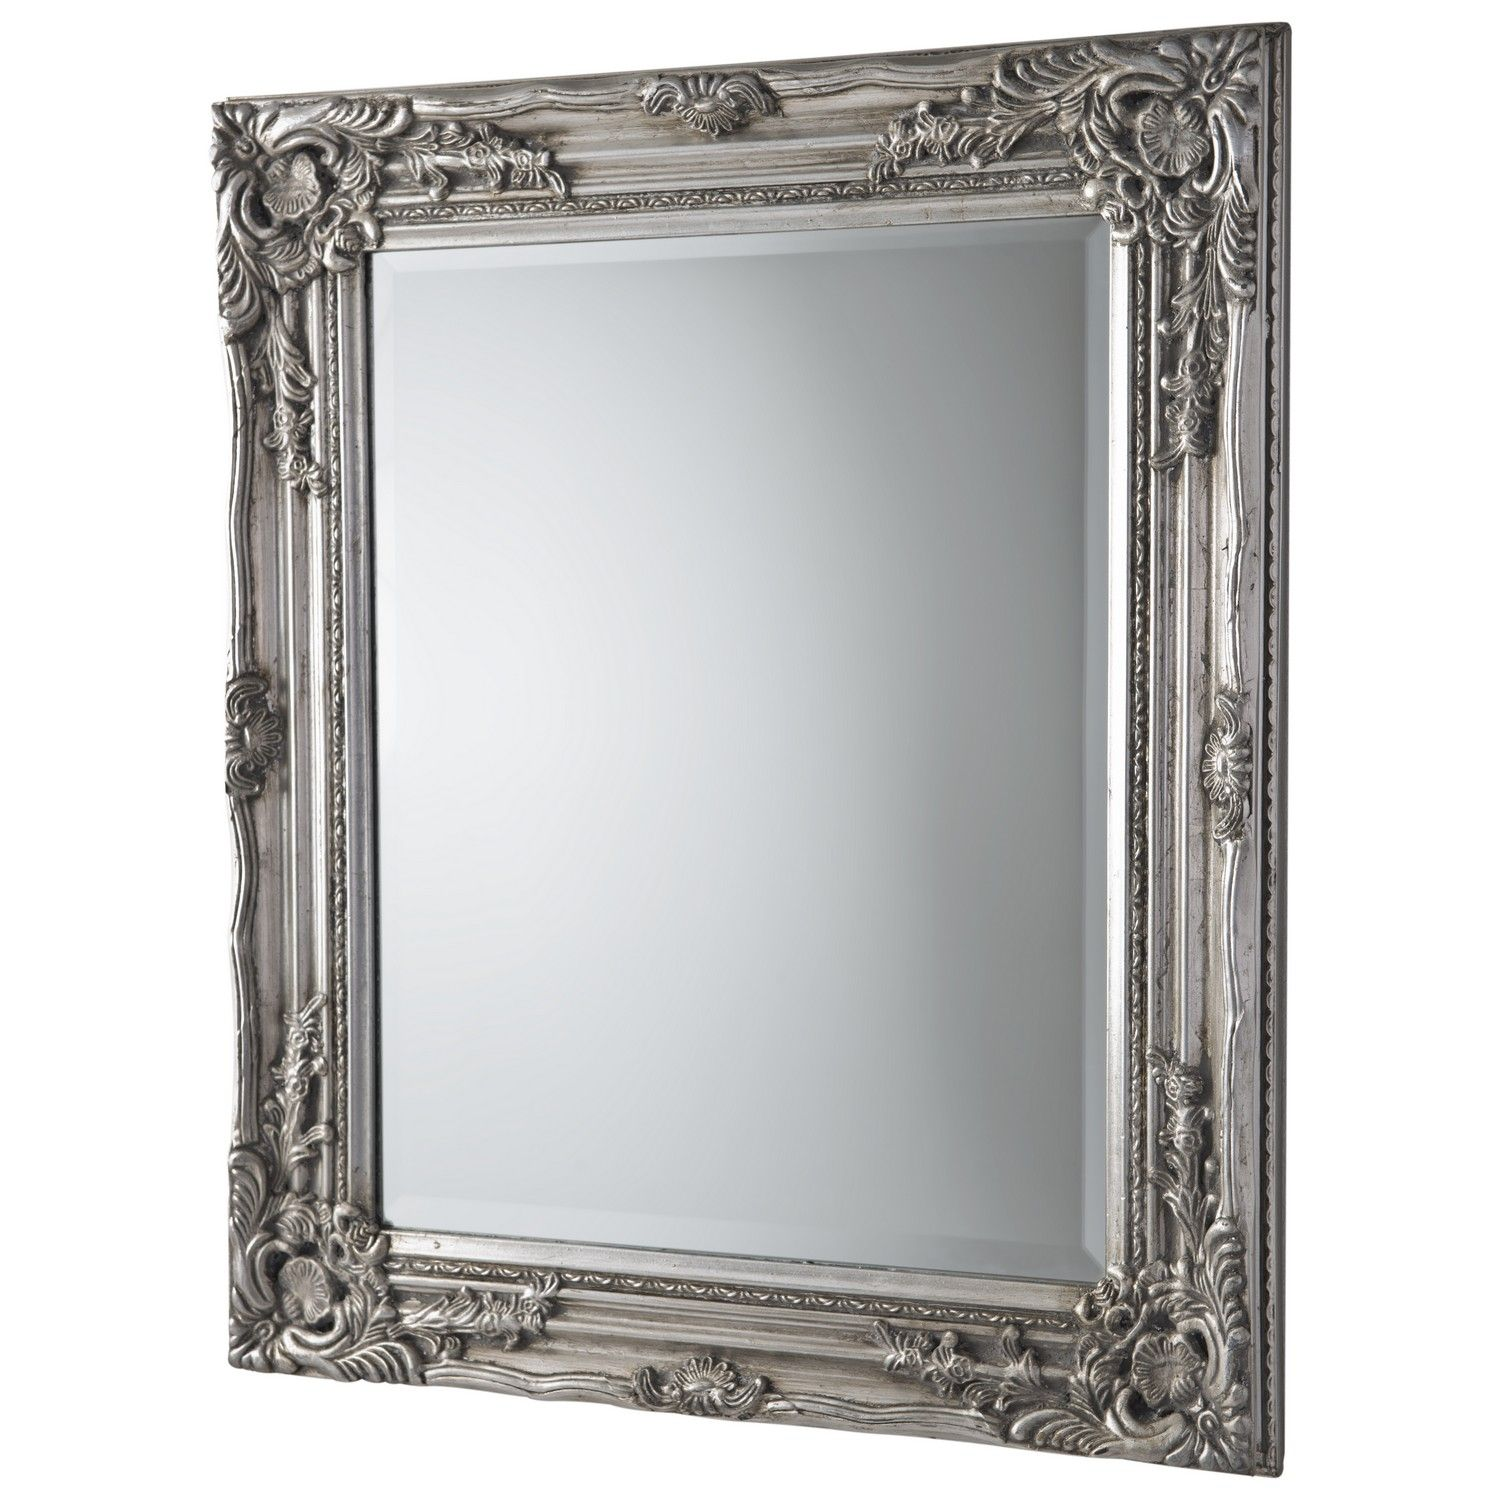 Buy Silver Antique Ornate Mirror Mirrors The Range Cloakroom